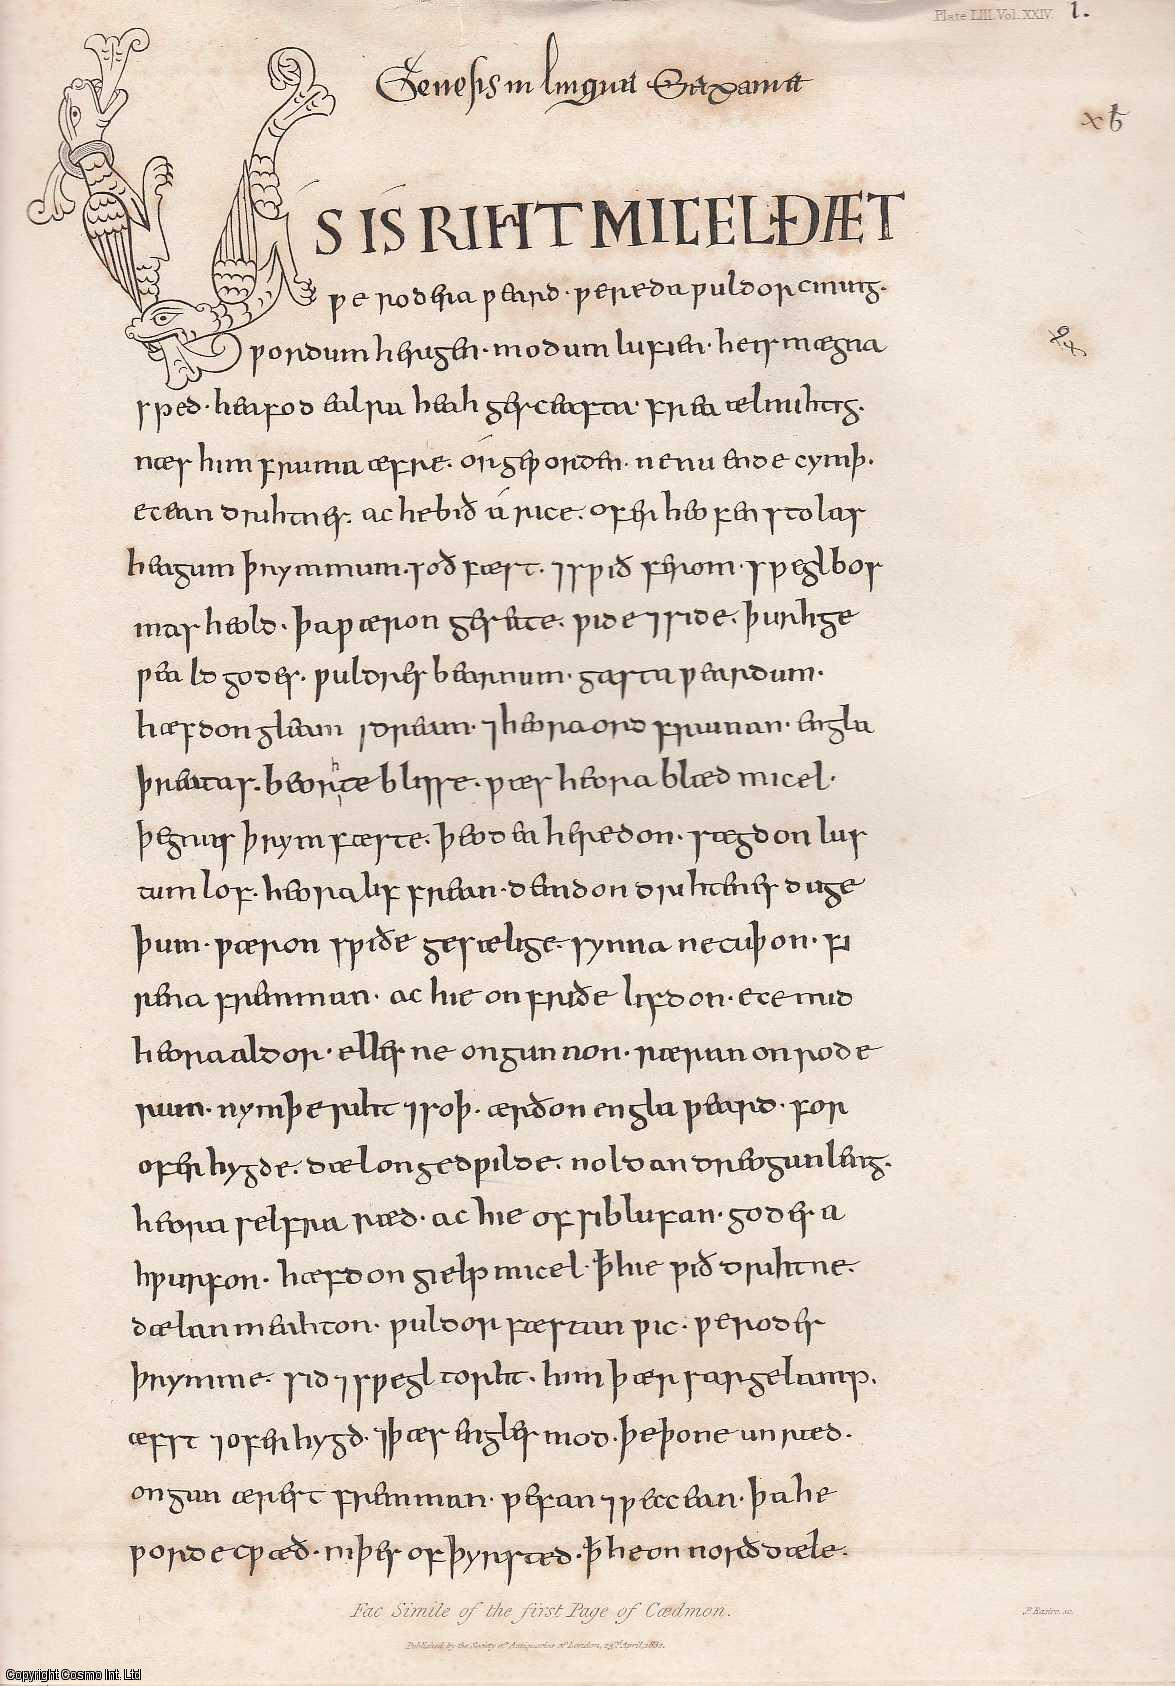 Account of Caedmon's Metrical Paraphrase of Scripture History, an illuminated Manuscript of the Tenth Century, preserved in the Bodleian Library at Oxford., Henry Ellis, Esq., F.R.S. (communicated by)